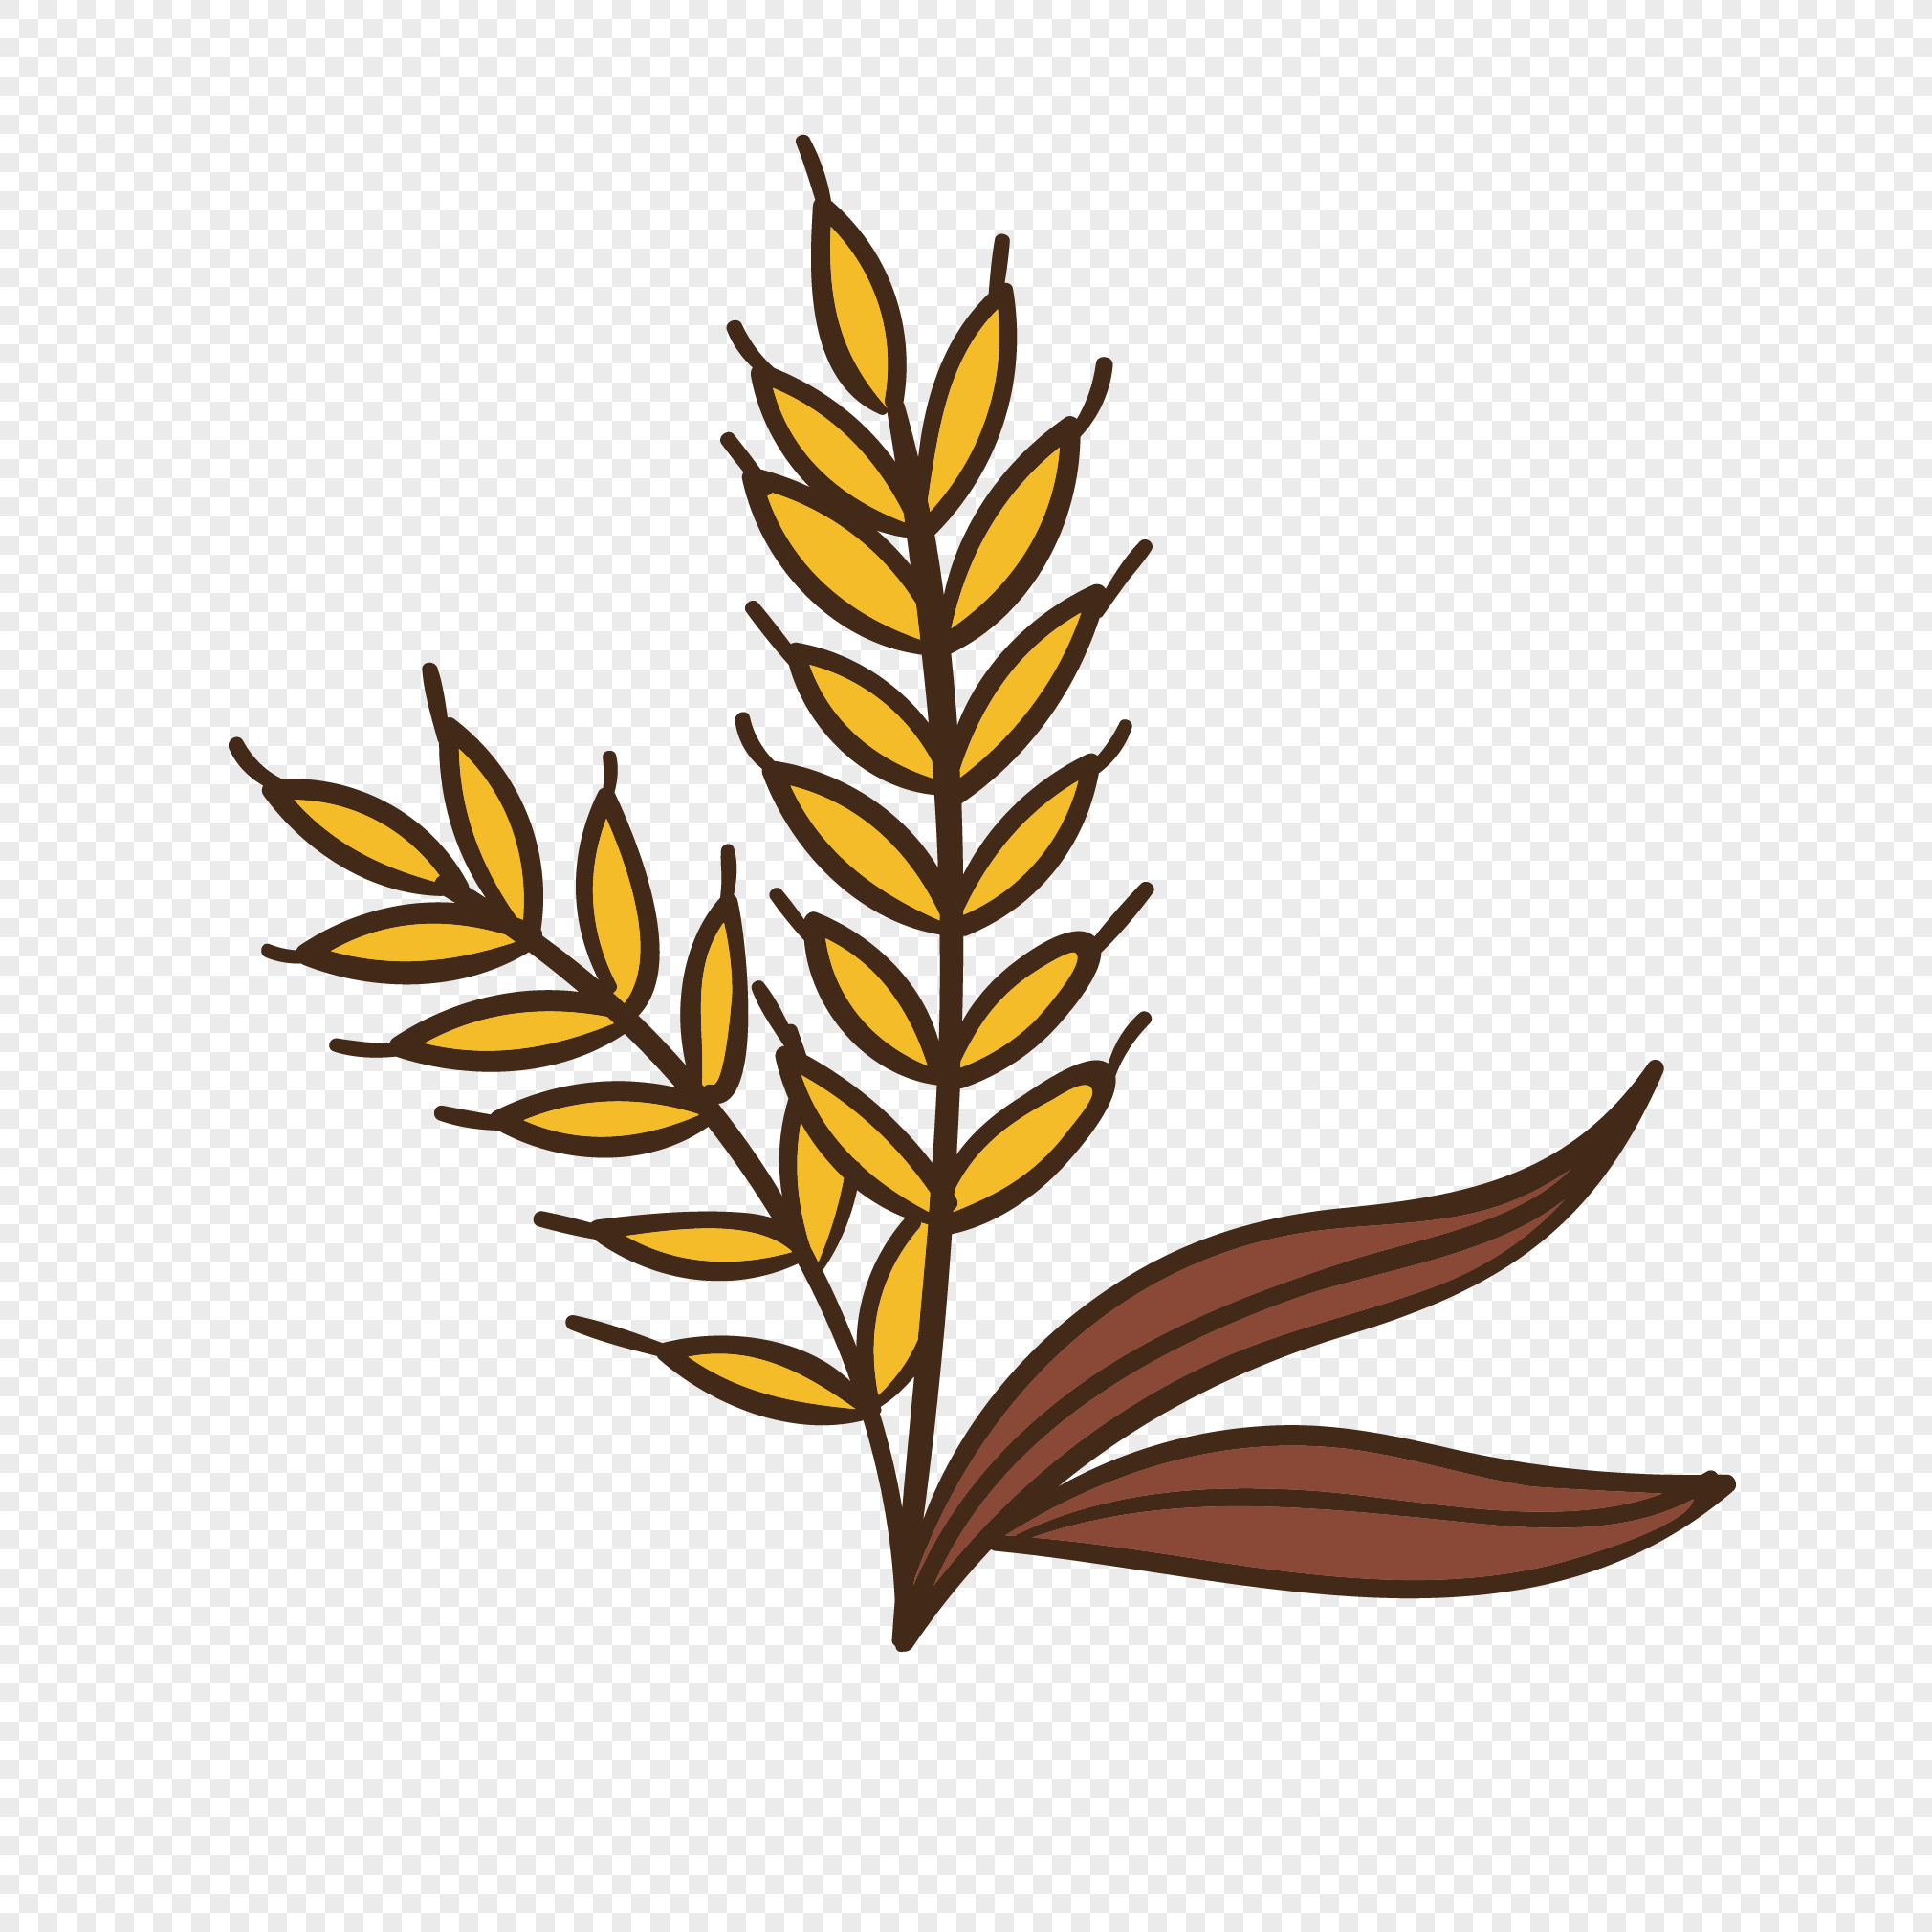 2020x2020 Golden Wheat Vector Png Image Picture Free Download